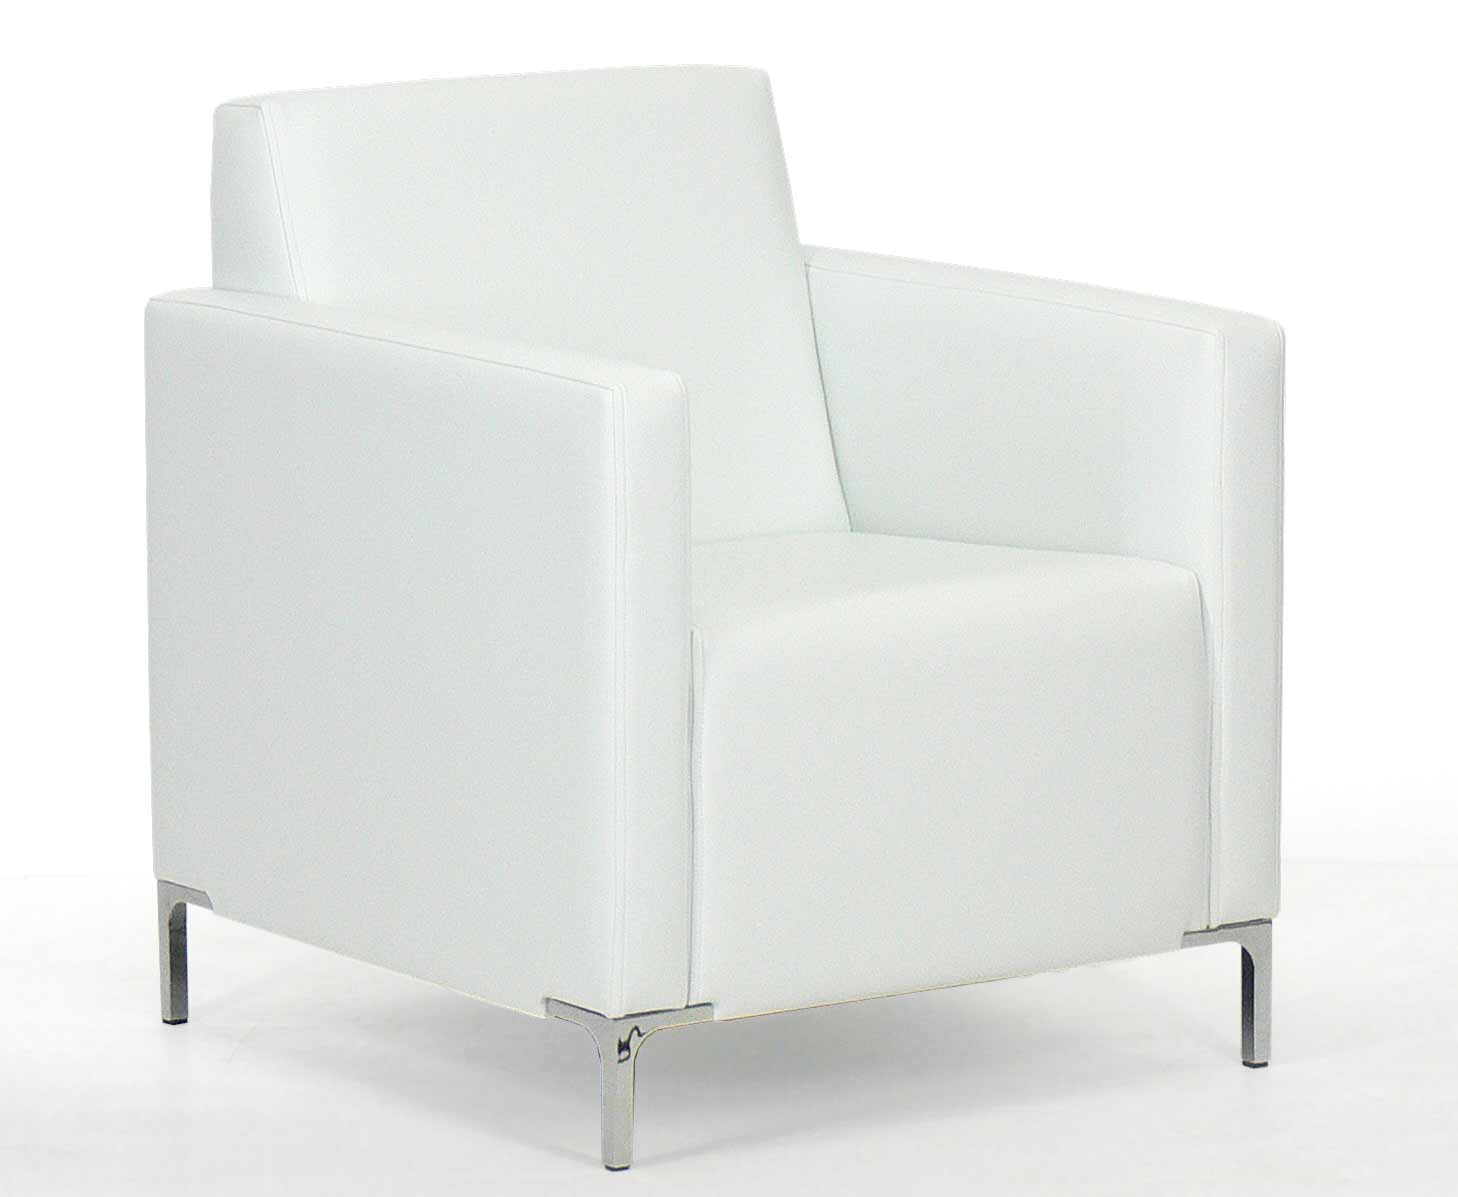 Office Reception Seating Design